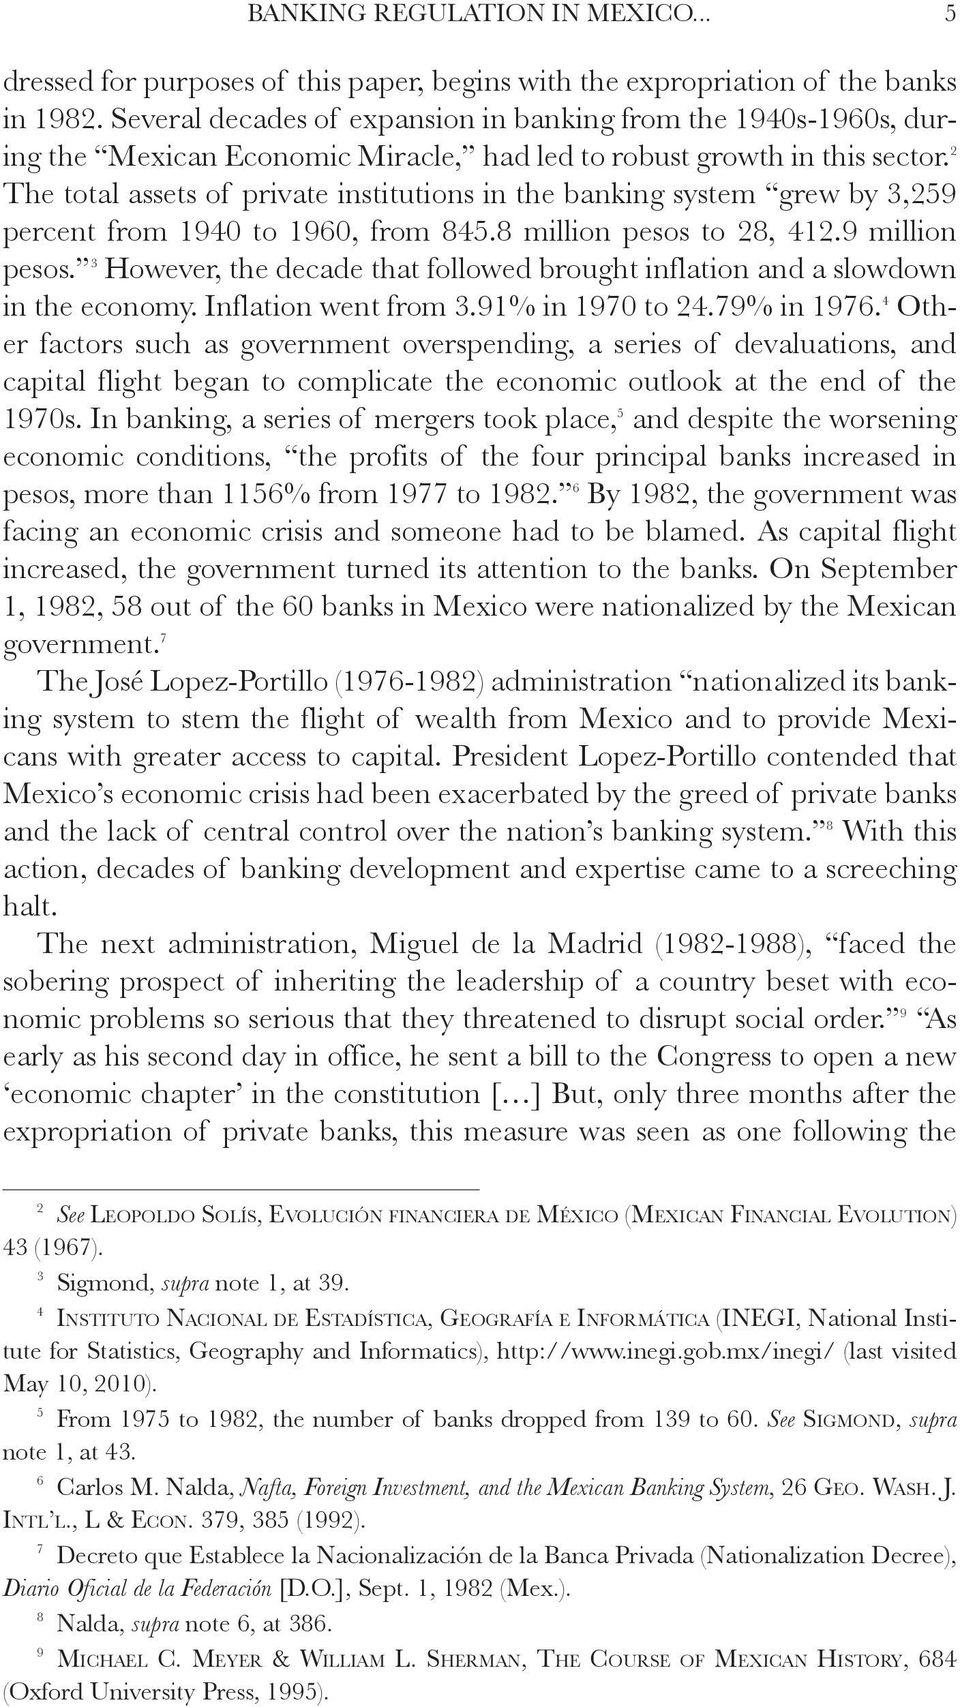 2 The total assets of private institutions in the banking system grew by 3,259 percent from 1940 to 1960, from 845.8 million pesos to 28, 412.9 million pesos.